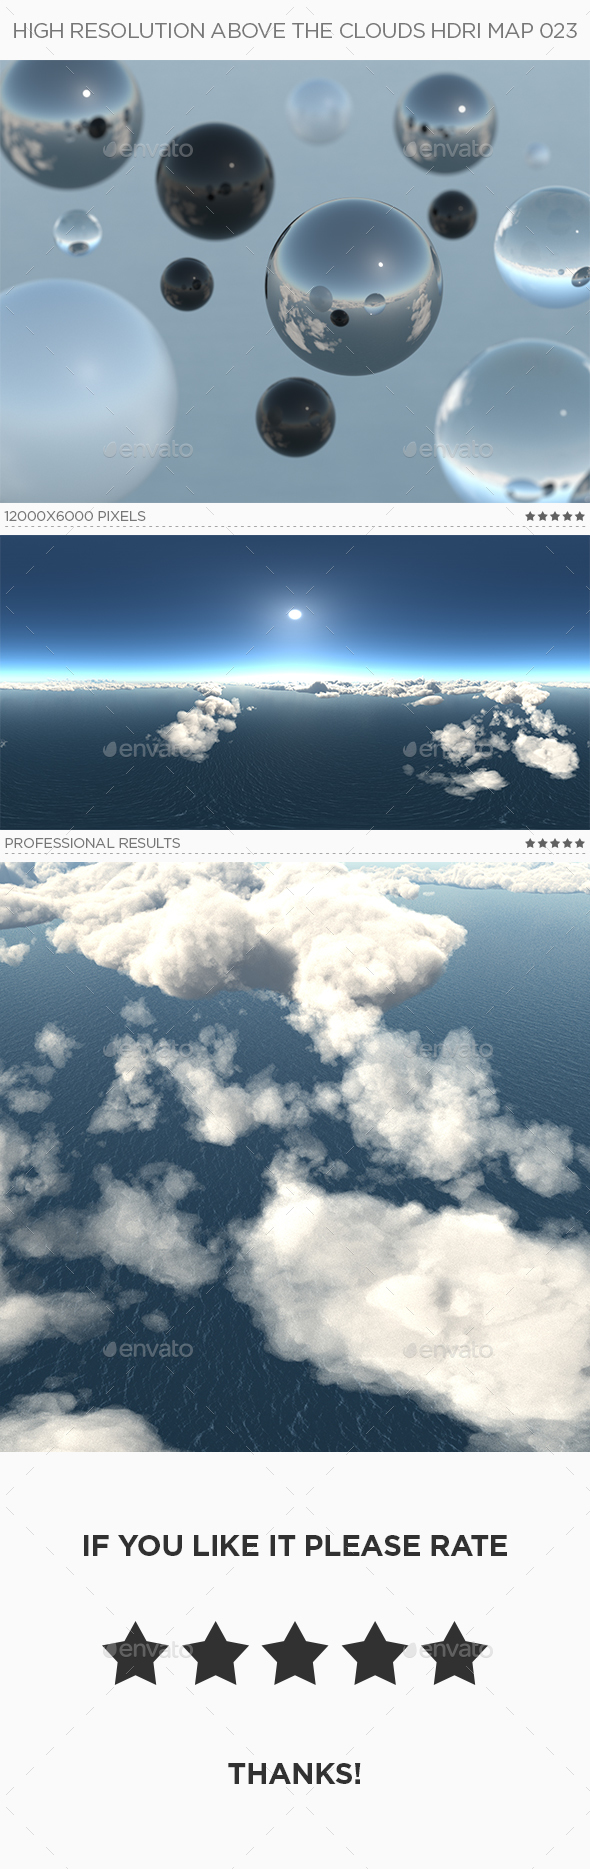 High Resolution Above The Clouds HDRi Map 023 - 3DOcean Item for Sale